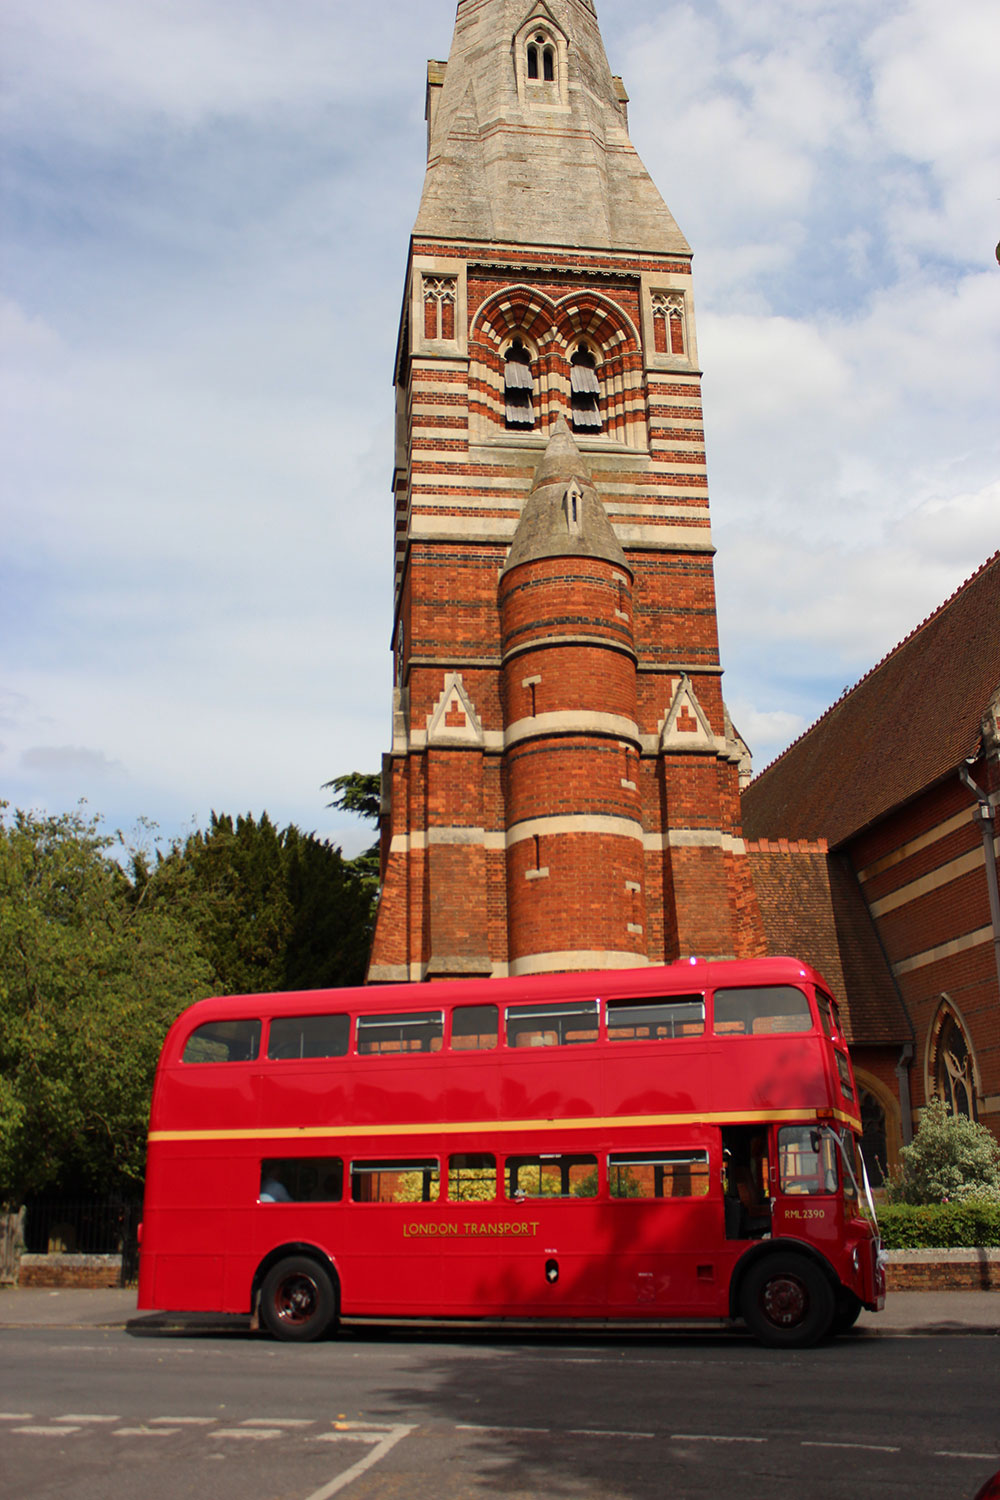 Daniel Fairbairn, Wedding photo of routemaster hire bus outside church